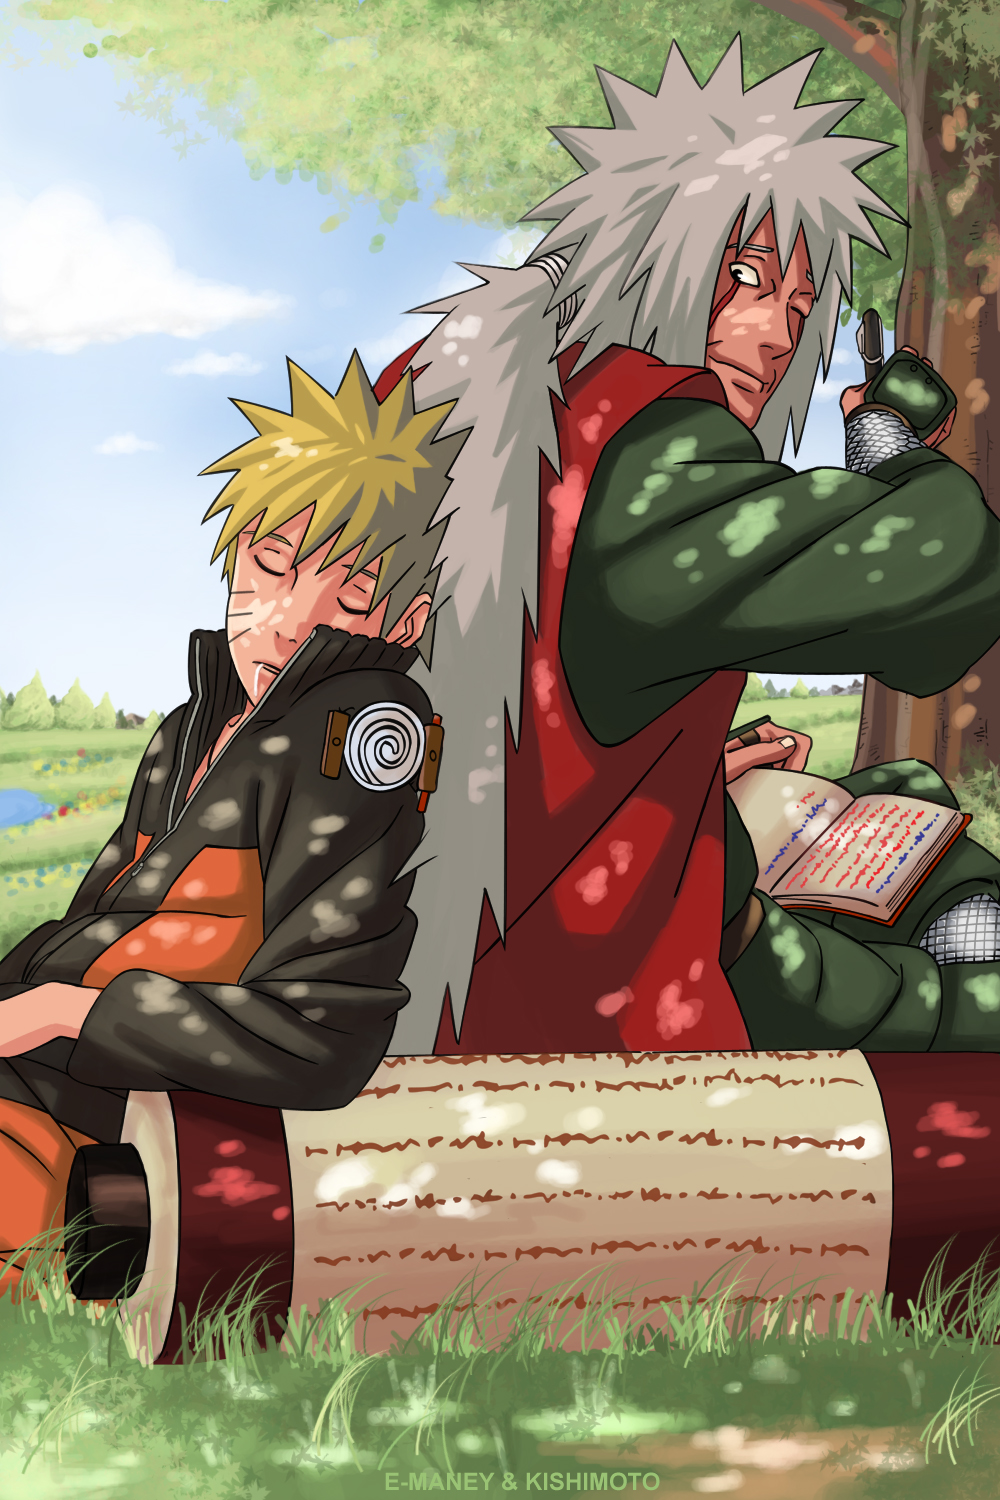 EverythingsNaruto A Tribute to the Naruto Fathers on